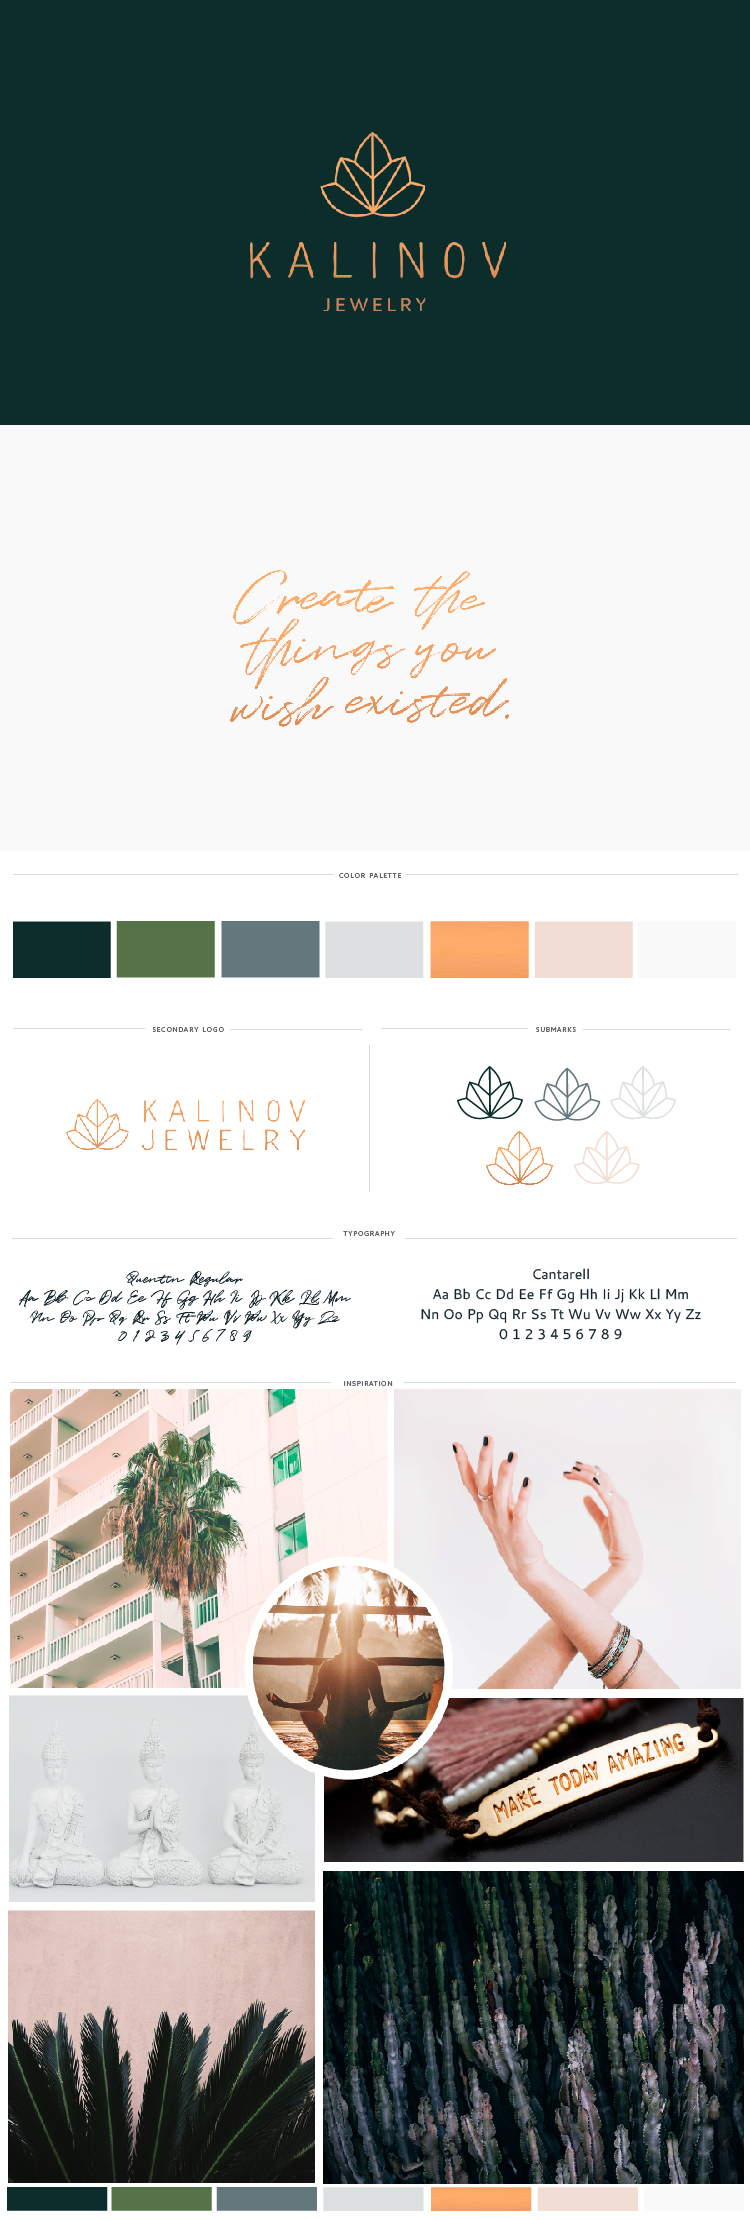 Brand board, moodboard, logo design, colors, fonts, and logo submarks for Kalinov Jewelry, a yoga-inspired jewelry line based in Miami. A maple leaf and lotus are the inspiration behind the logo design. Influenced by the tropical feel of Miami as well as by yoga.